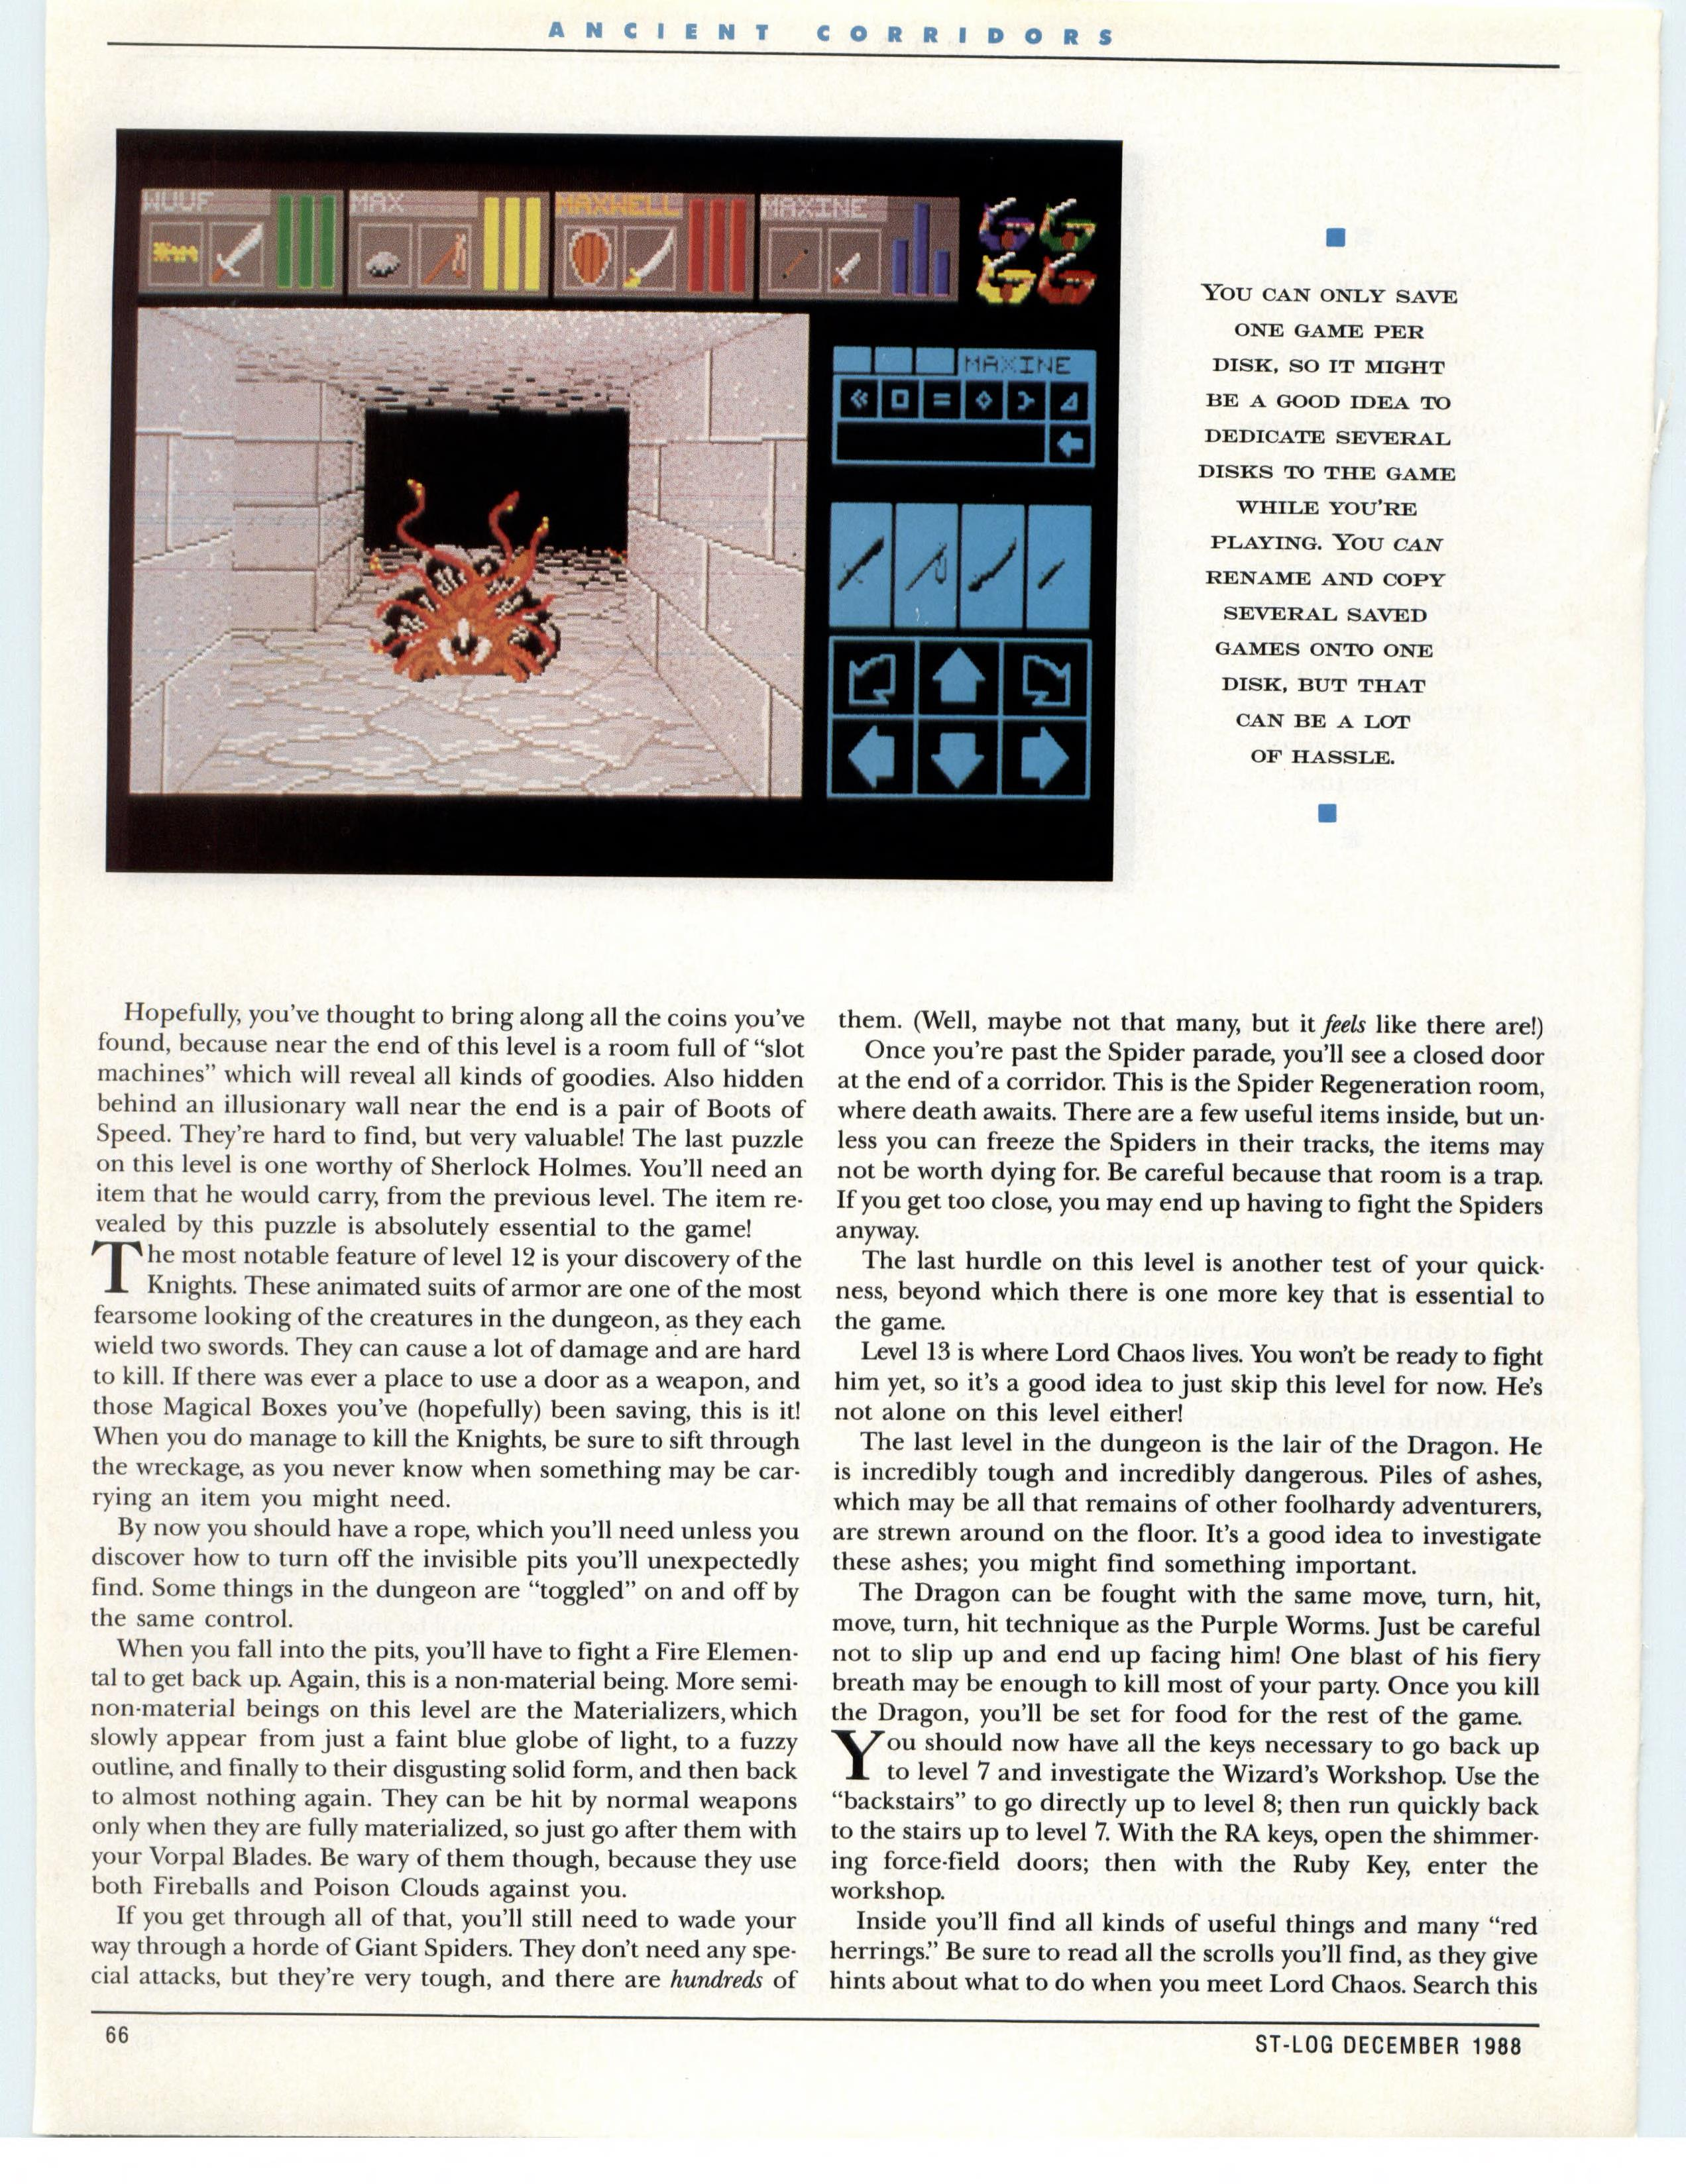 Dungeon Master for Atari ST Guide published in American magazine 'ST-Log', Issue #26 December 1988, Page 66